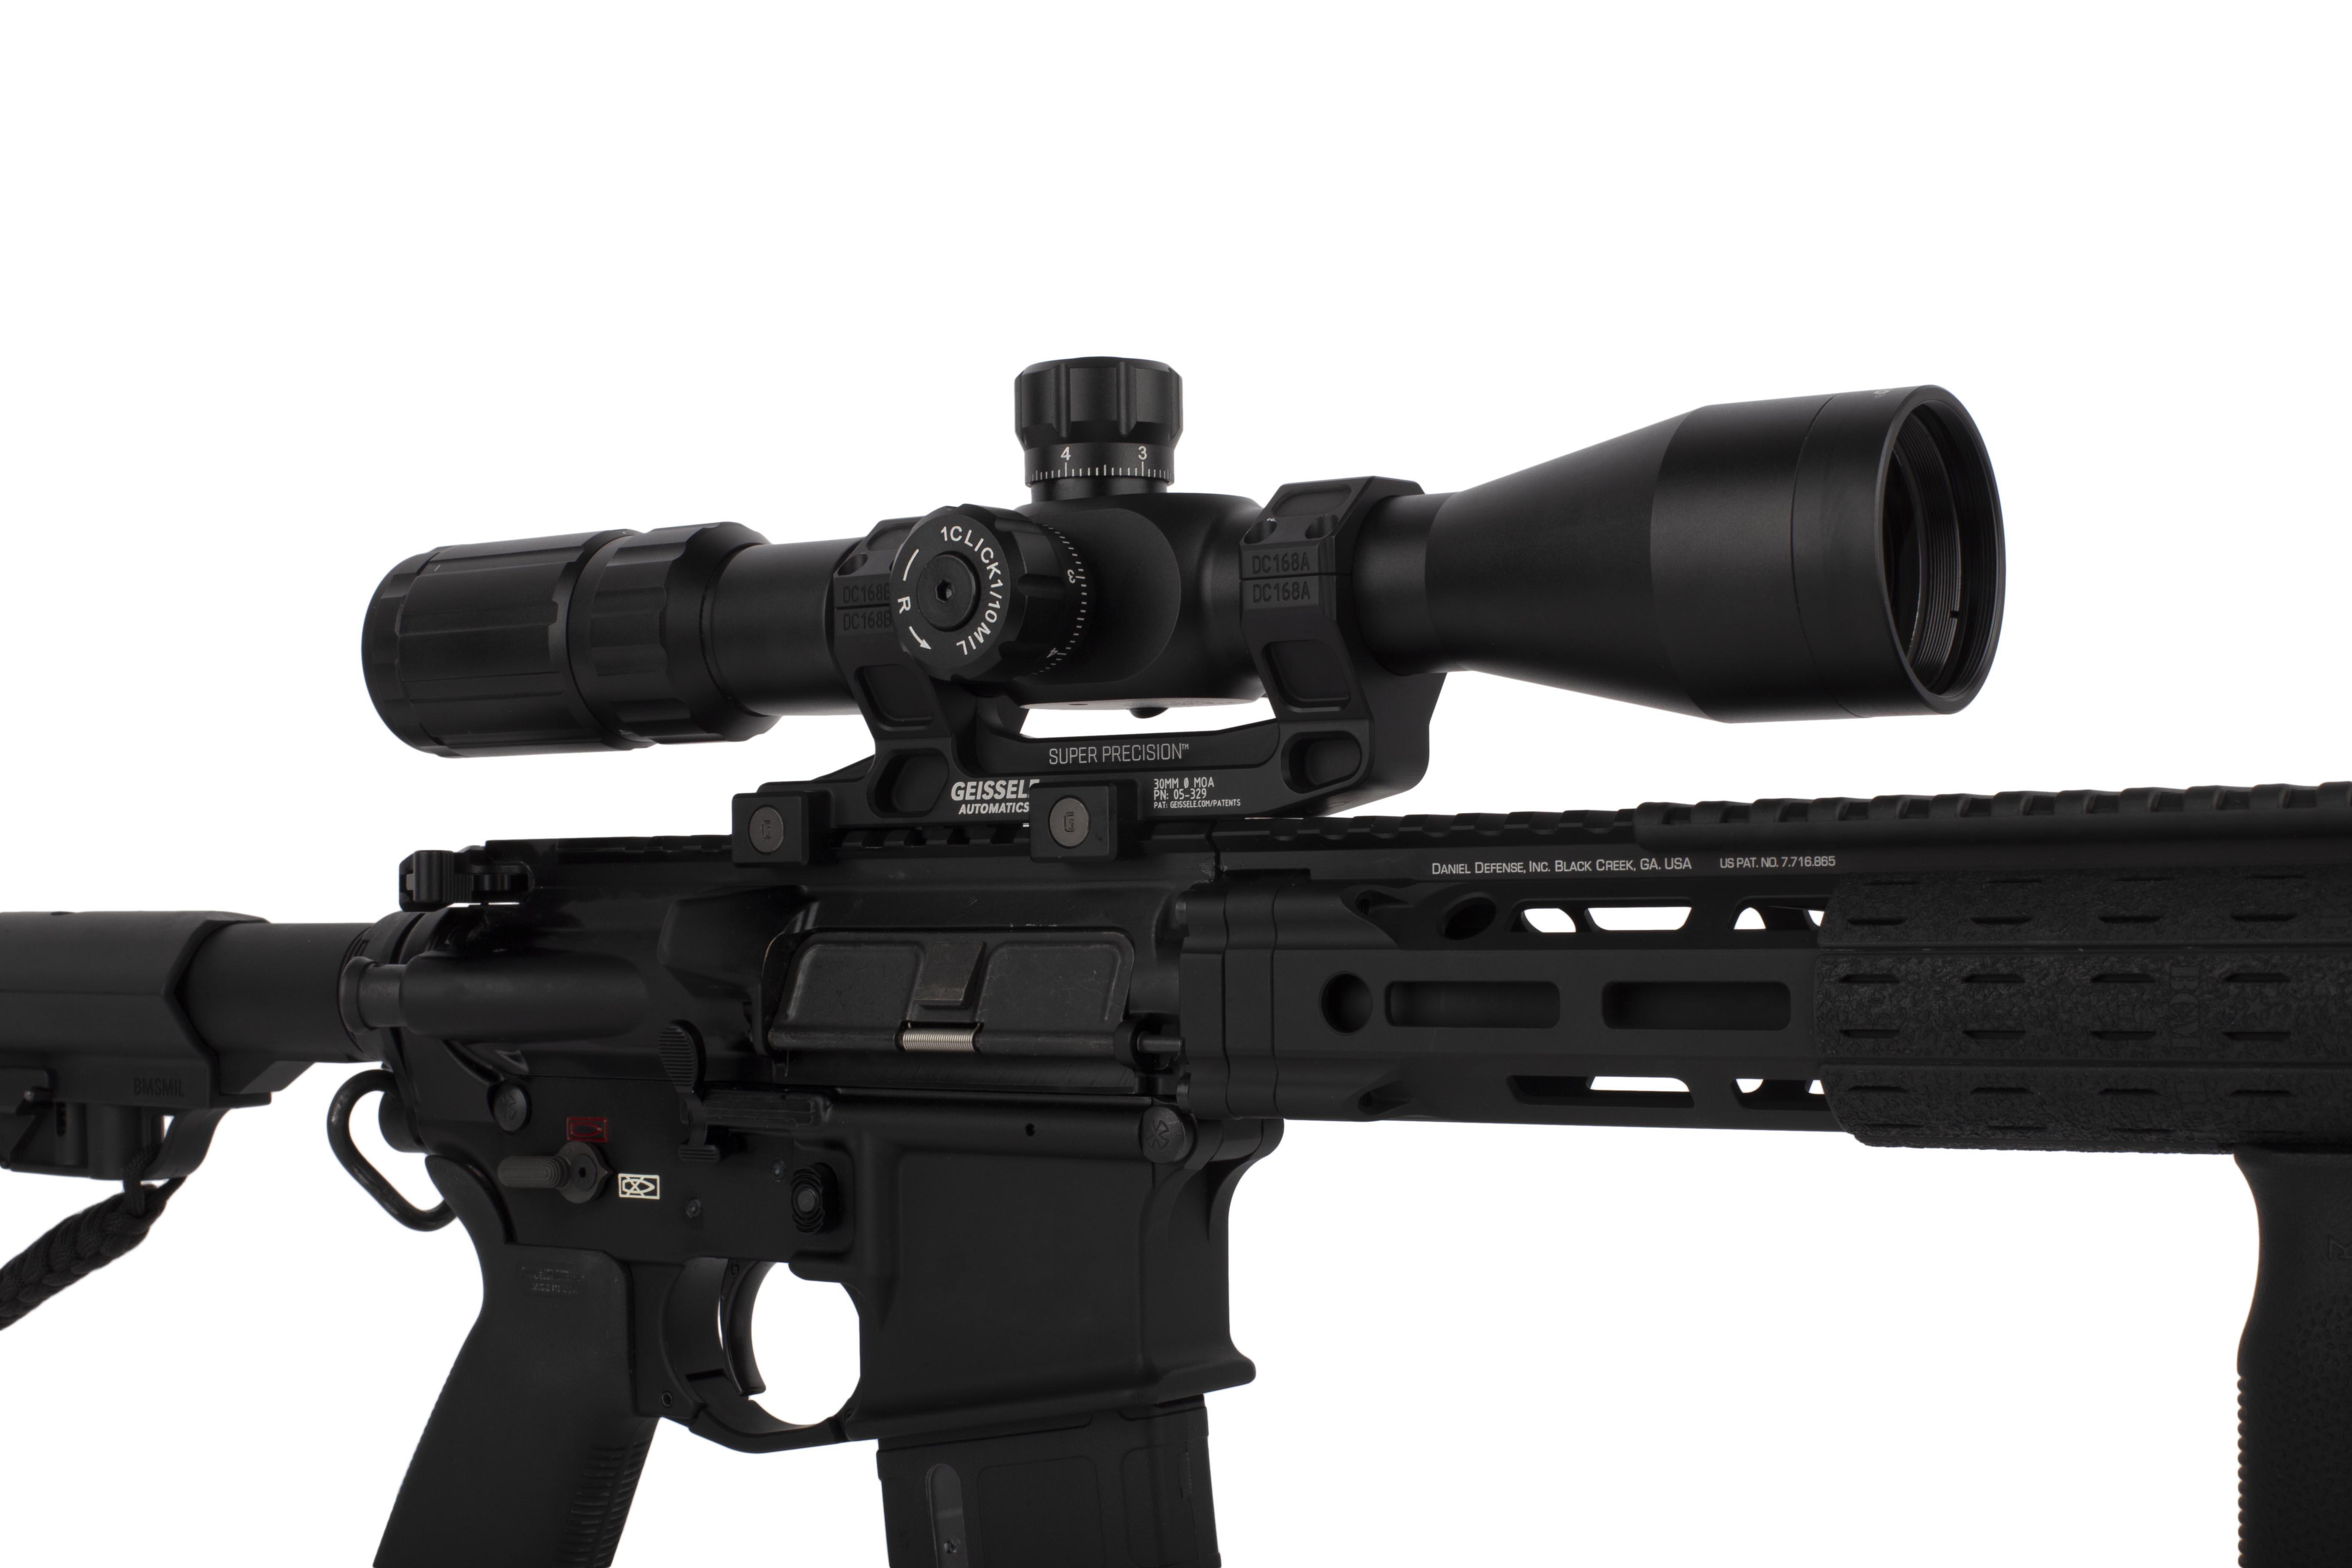 Primary Arms SLx3.5 4-14x44mm R-Grid 2B rifle scope shown mounted to an employee AR-15 build.